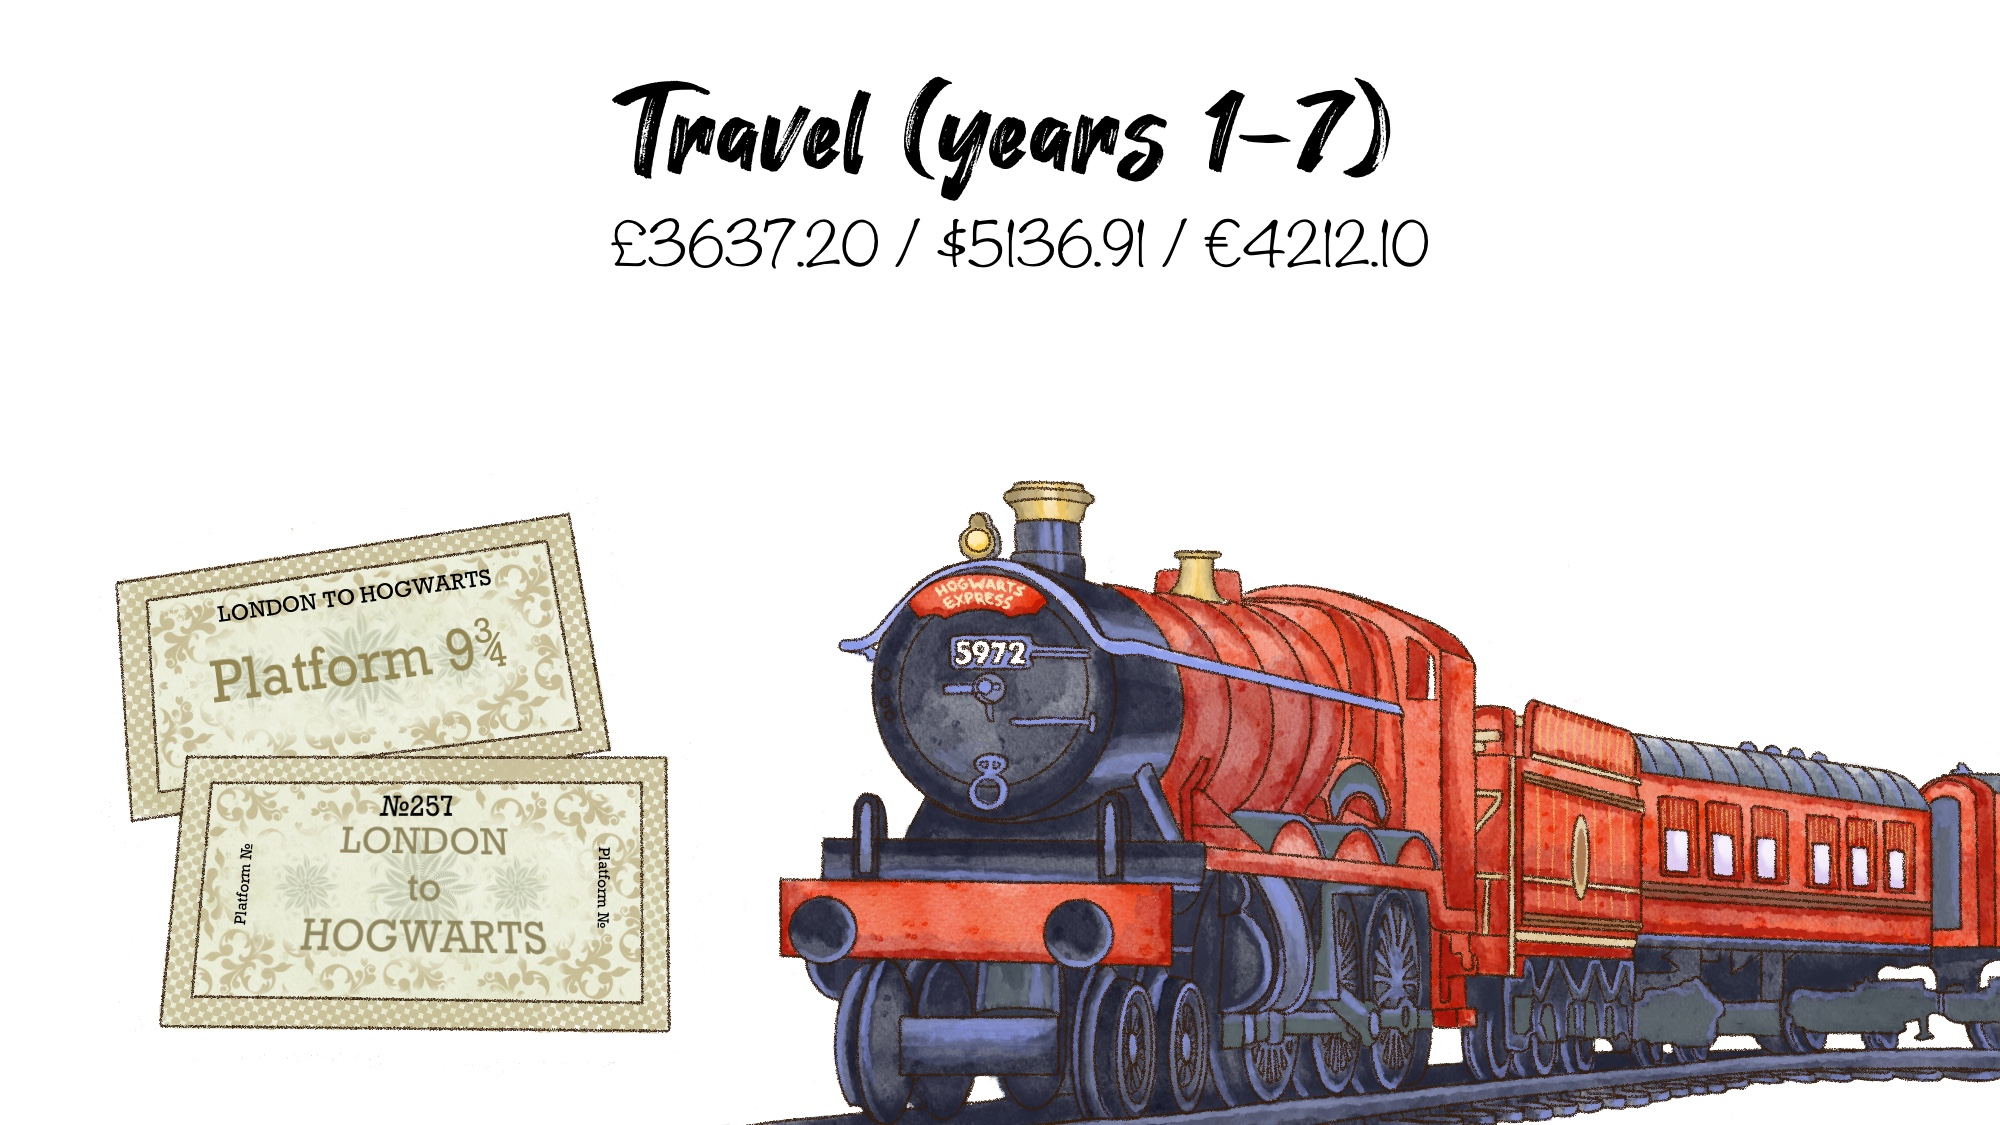 Travel costs account for around half of all the money needed to learn at Hogwarts.